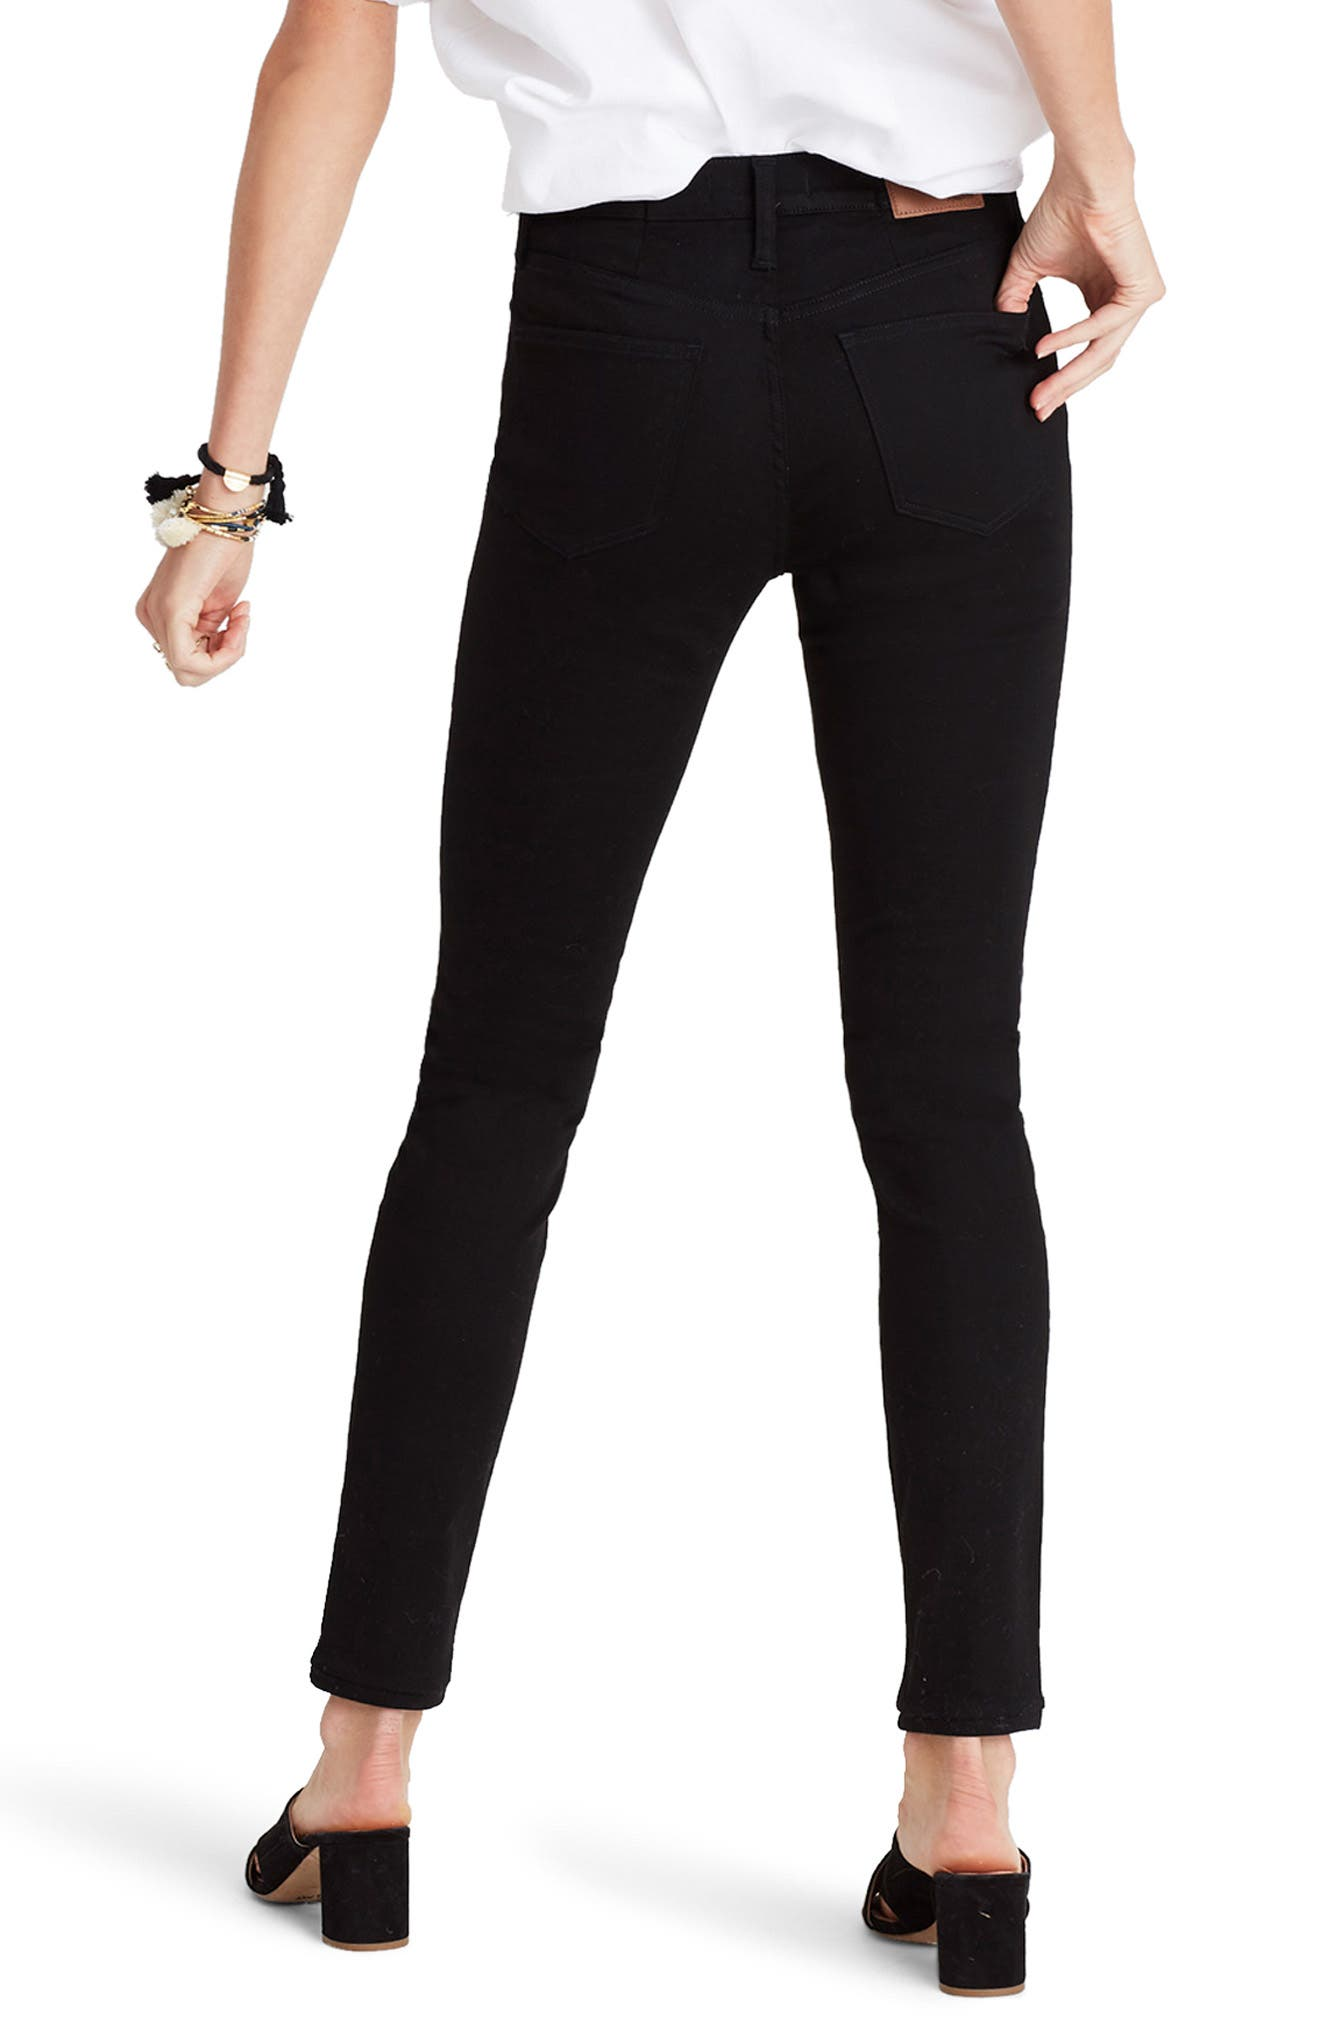 9-Inch High Waist Skinny Jeans,                             Alternate thumbnail 2, color,                             BLACK FROST